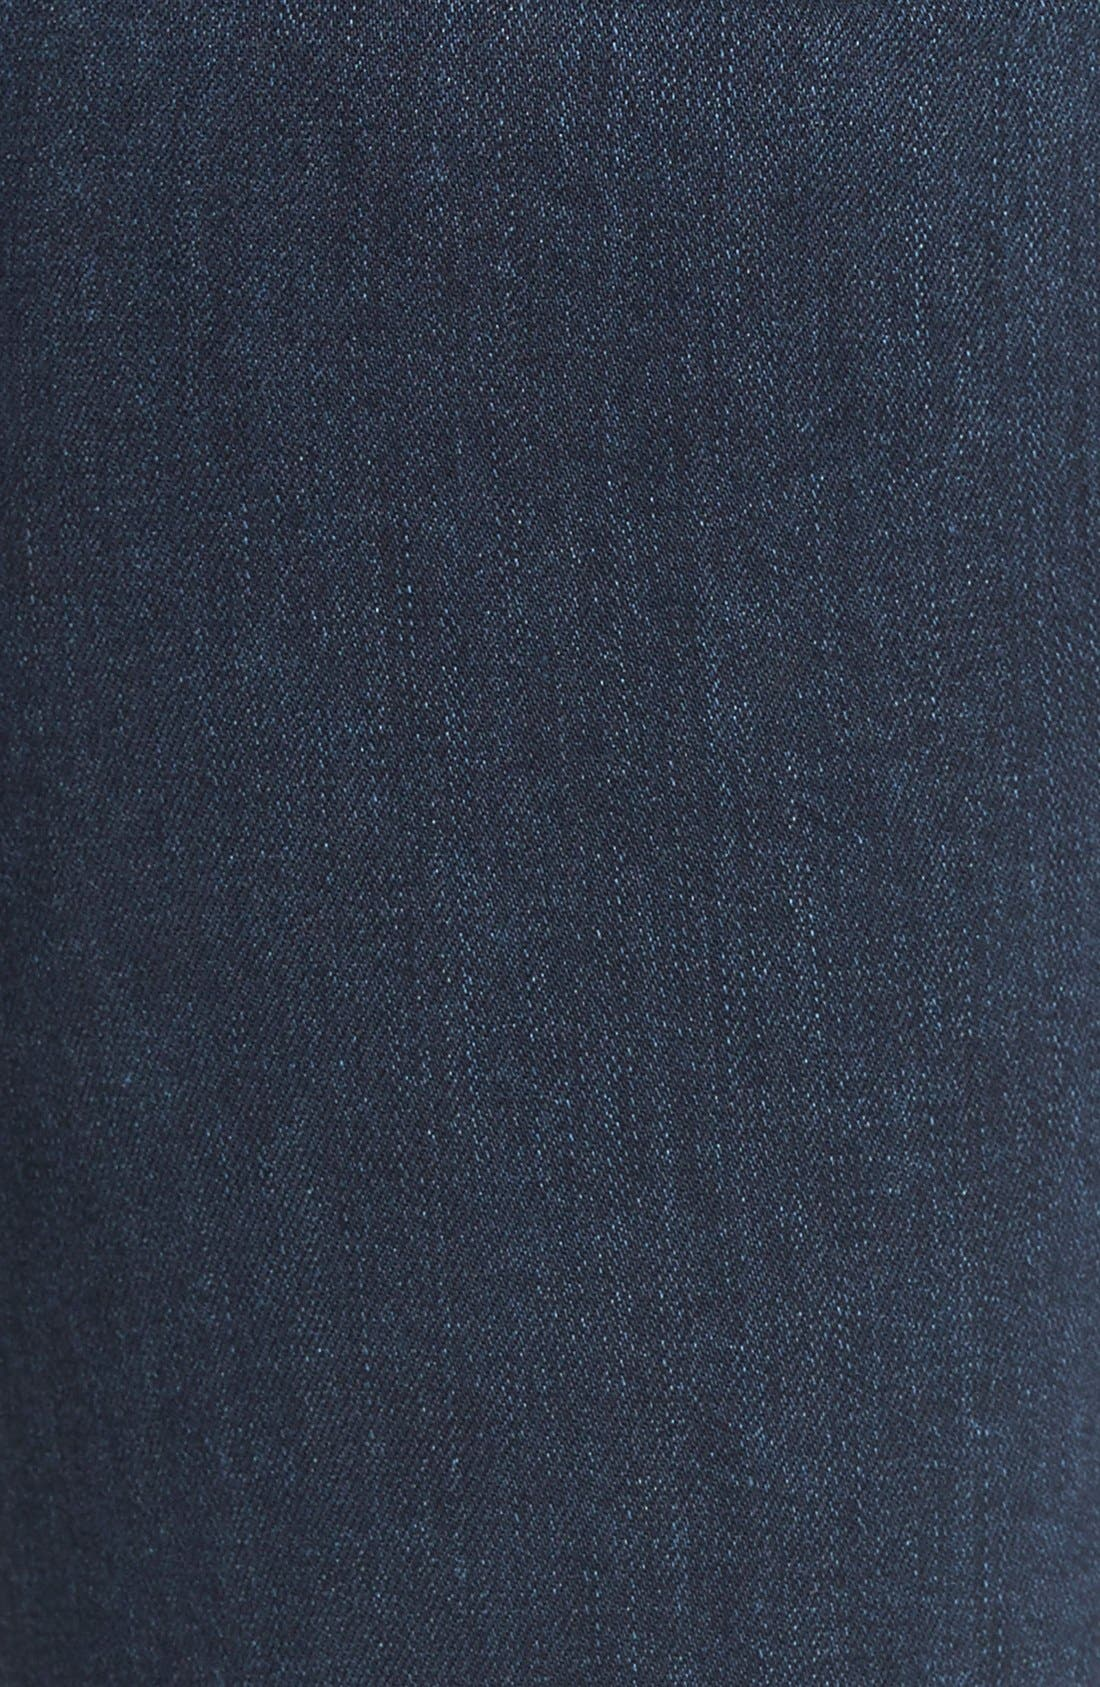 Denim 'Jill' Ultra Skinny Jeans,                             Alternate thumbnail 5, color,                             Reed No Whiskers